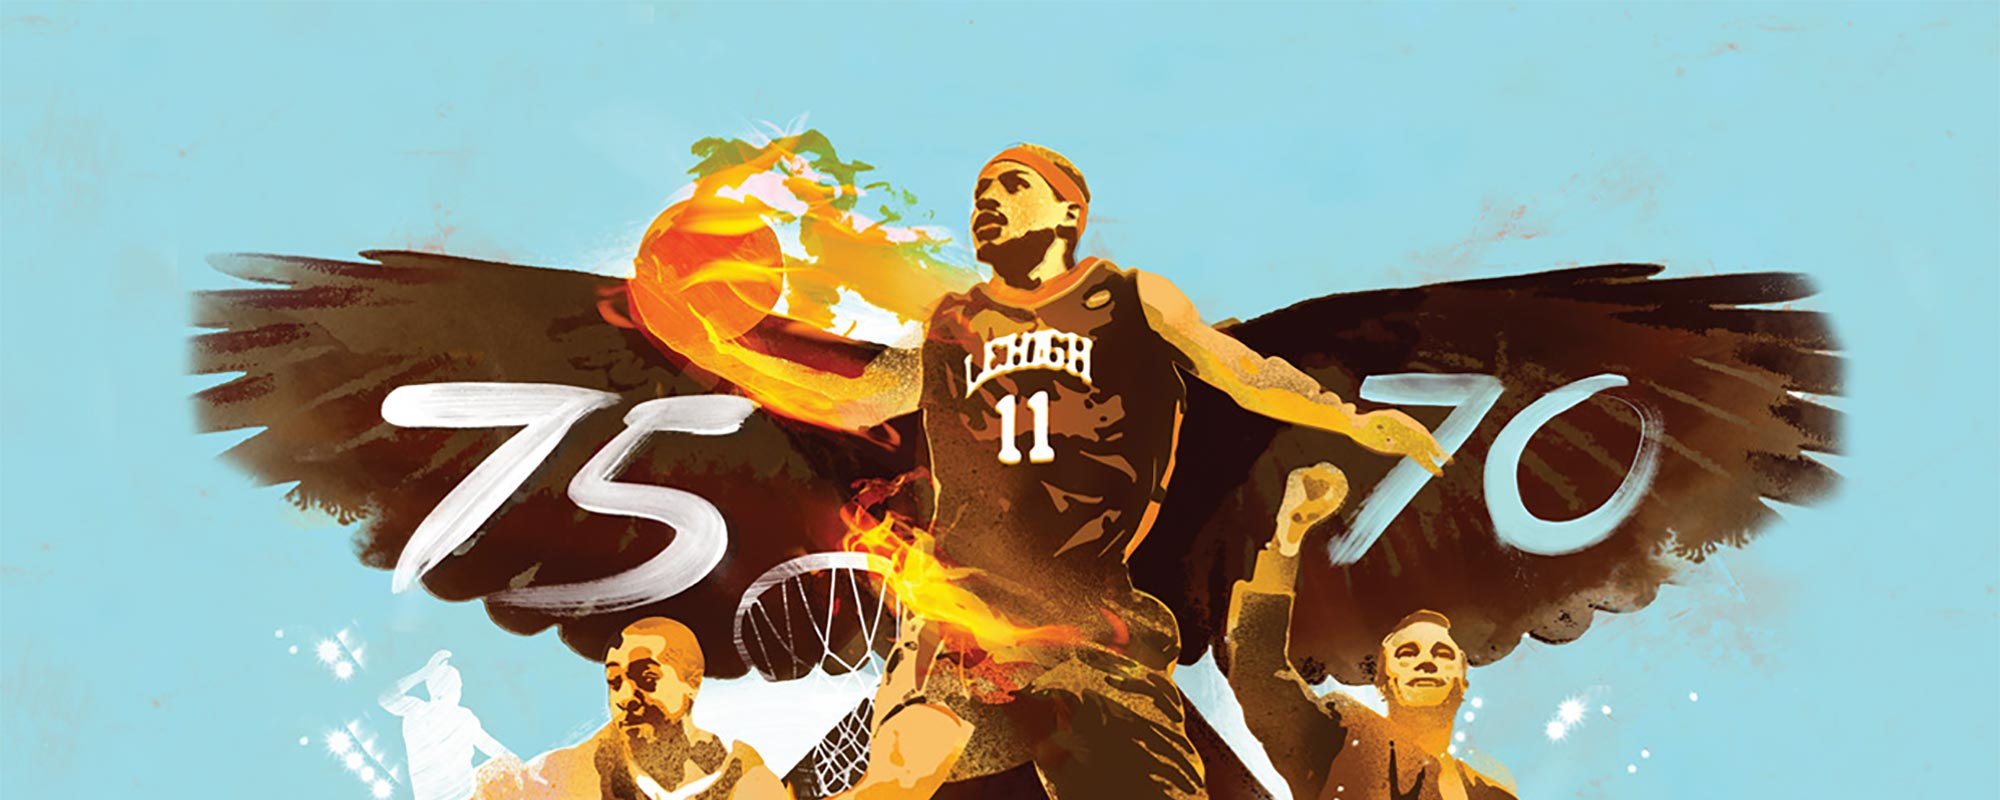 Illustration of Lehigh Basketball team